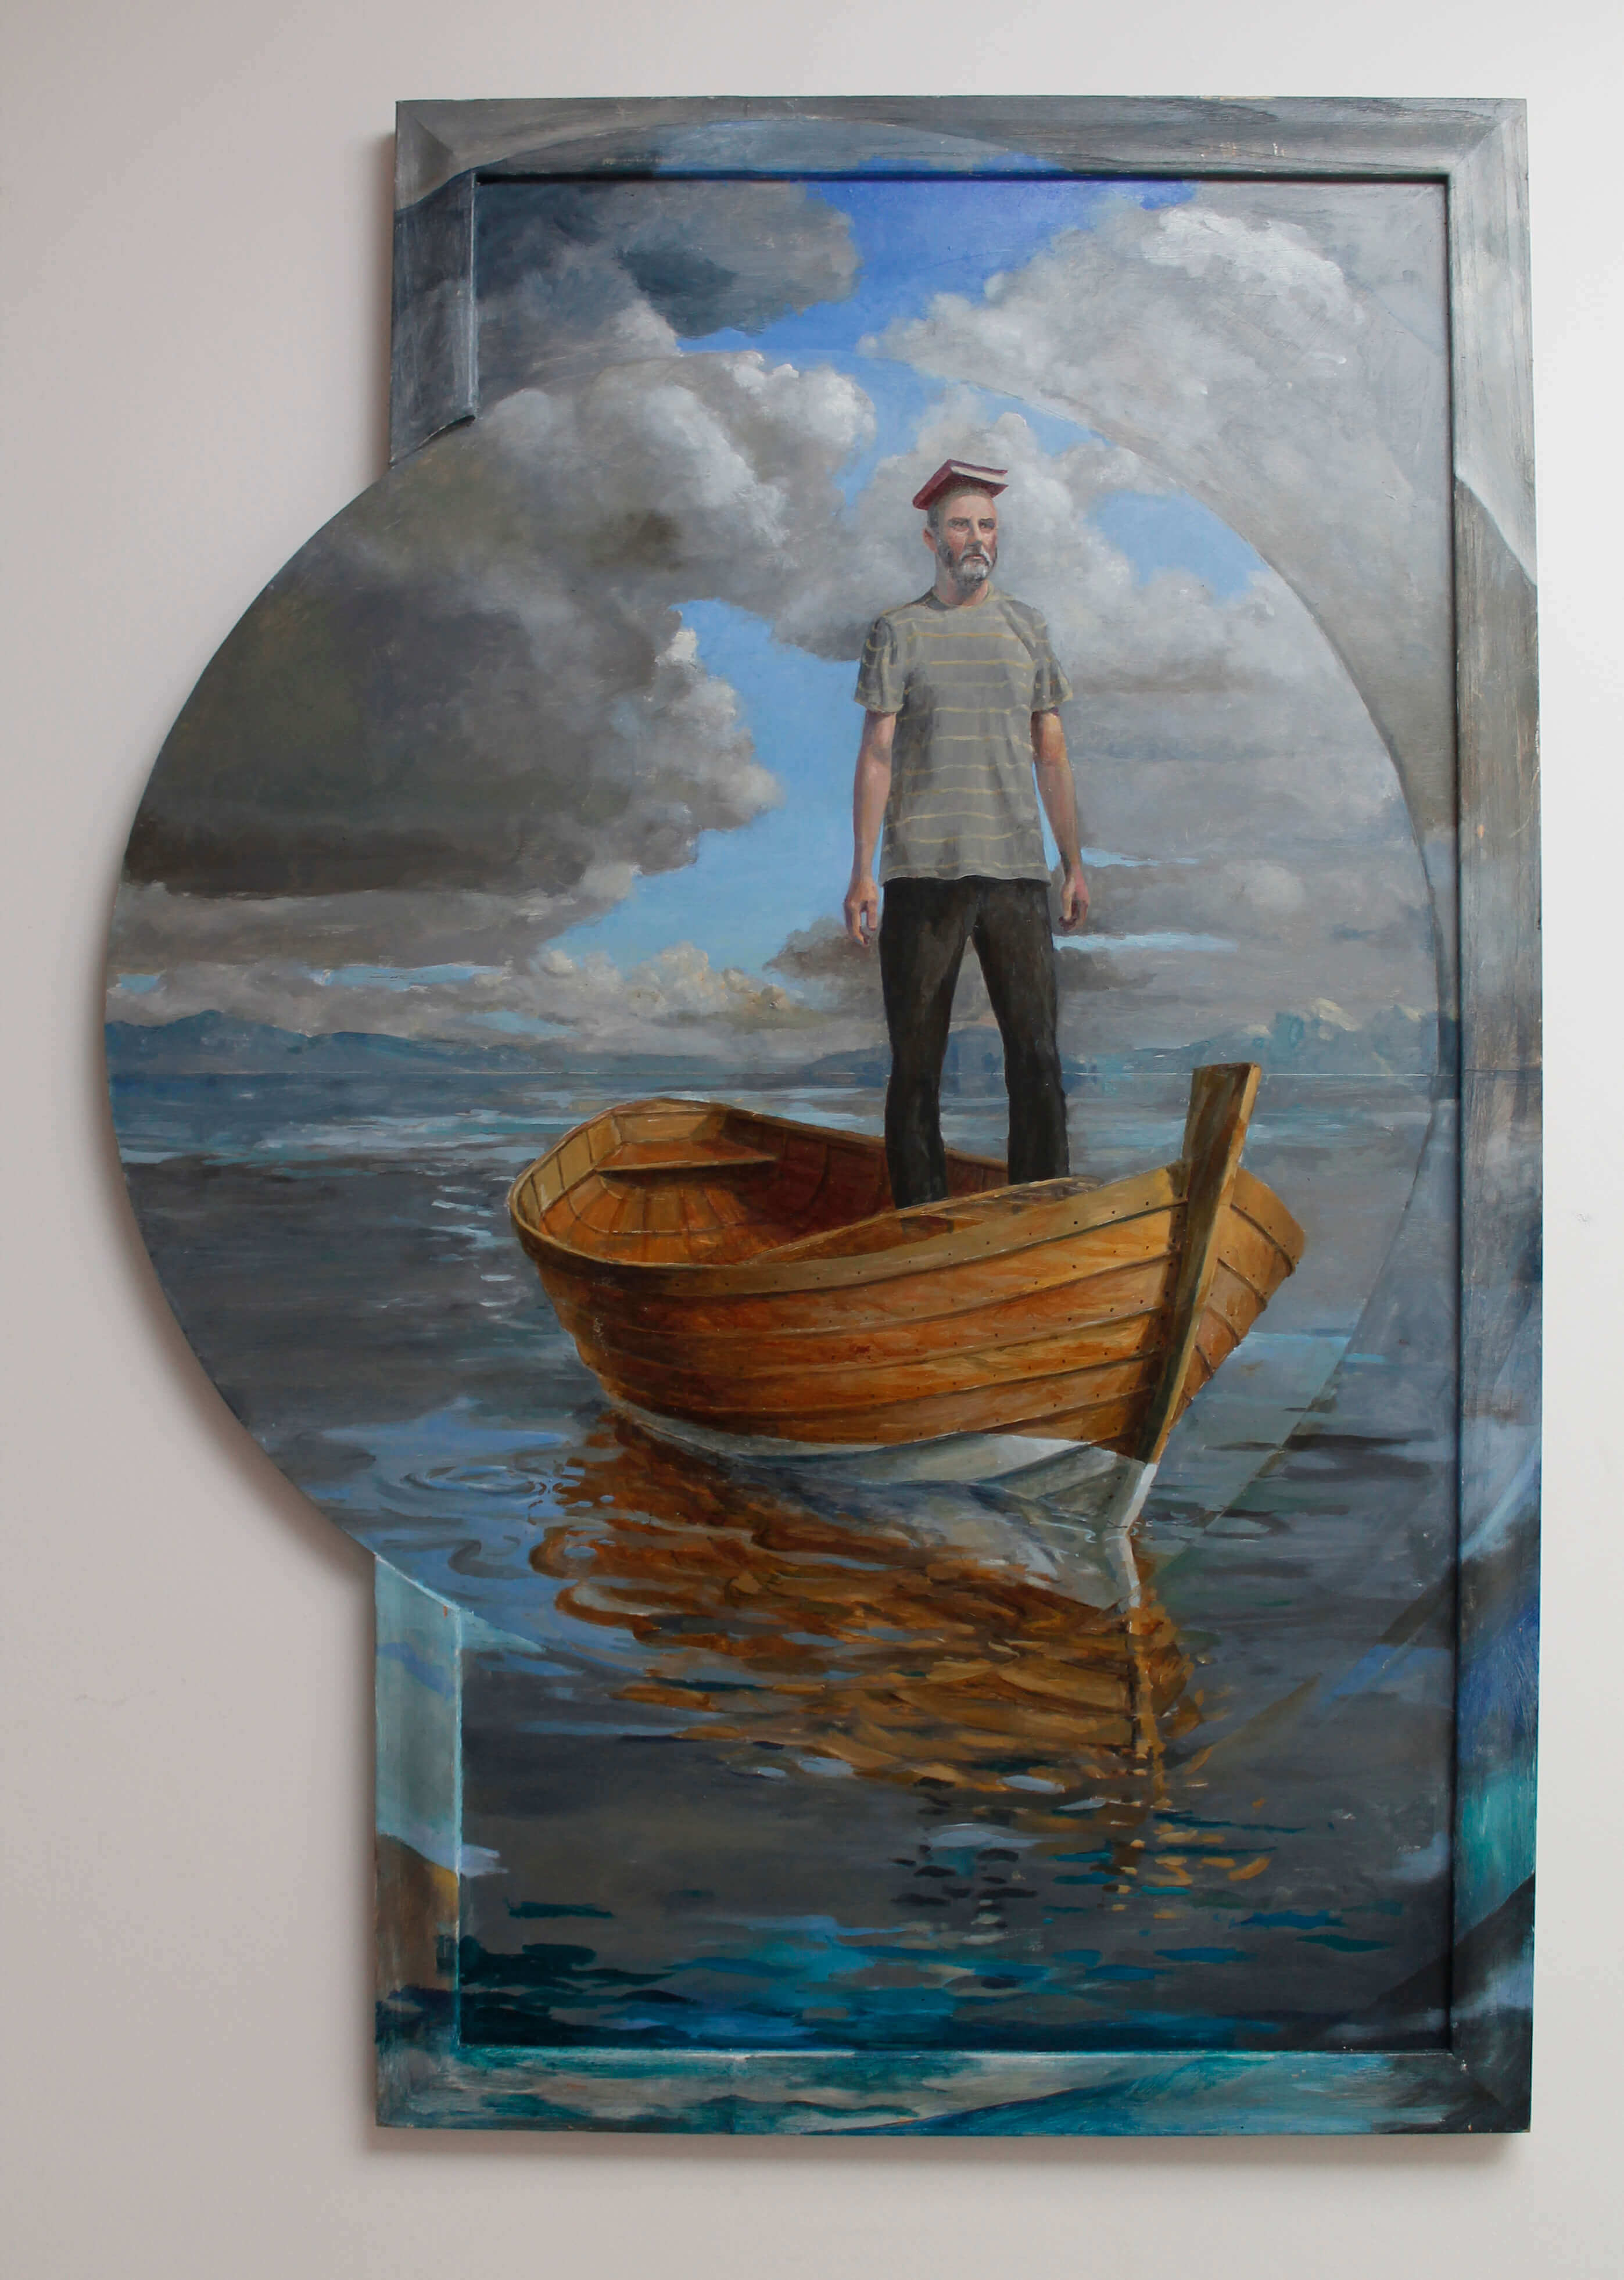 Boat artwork